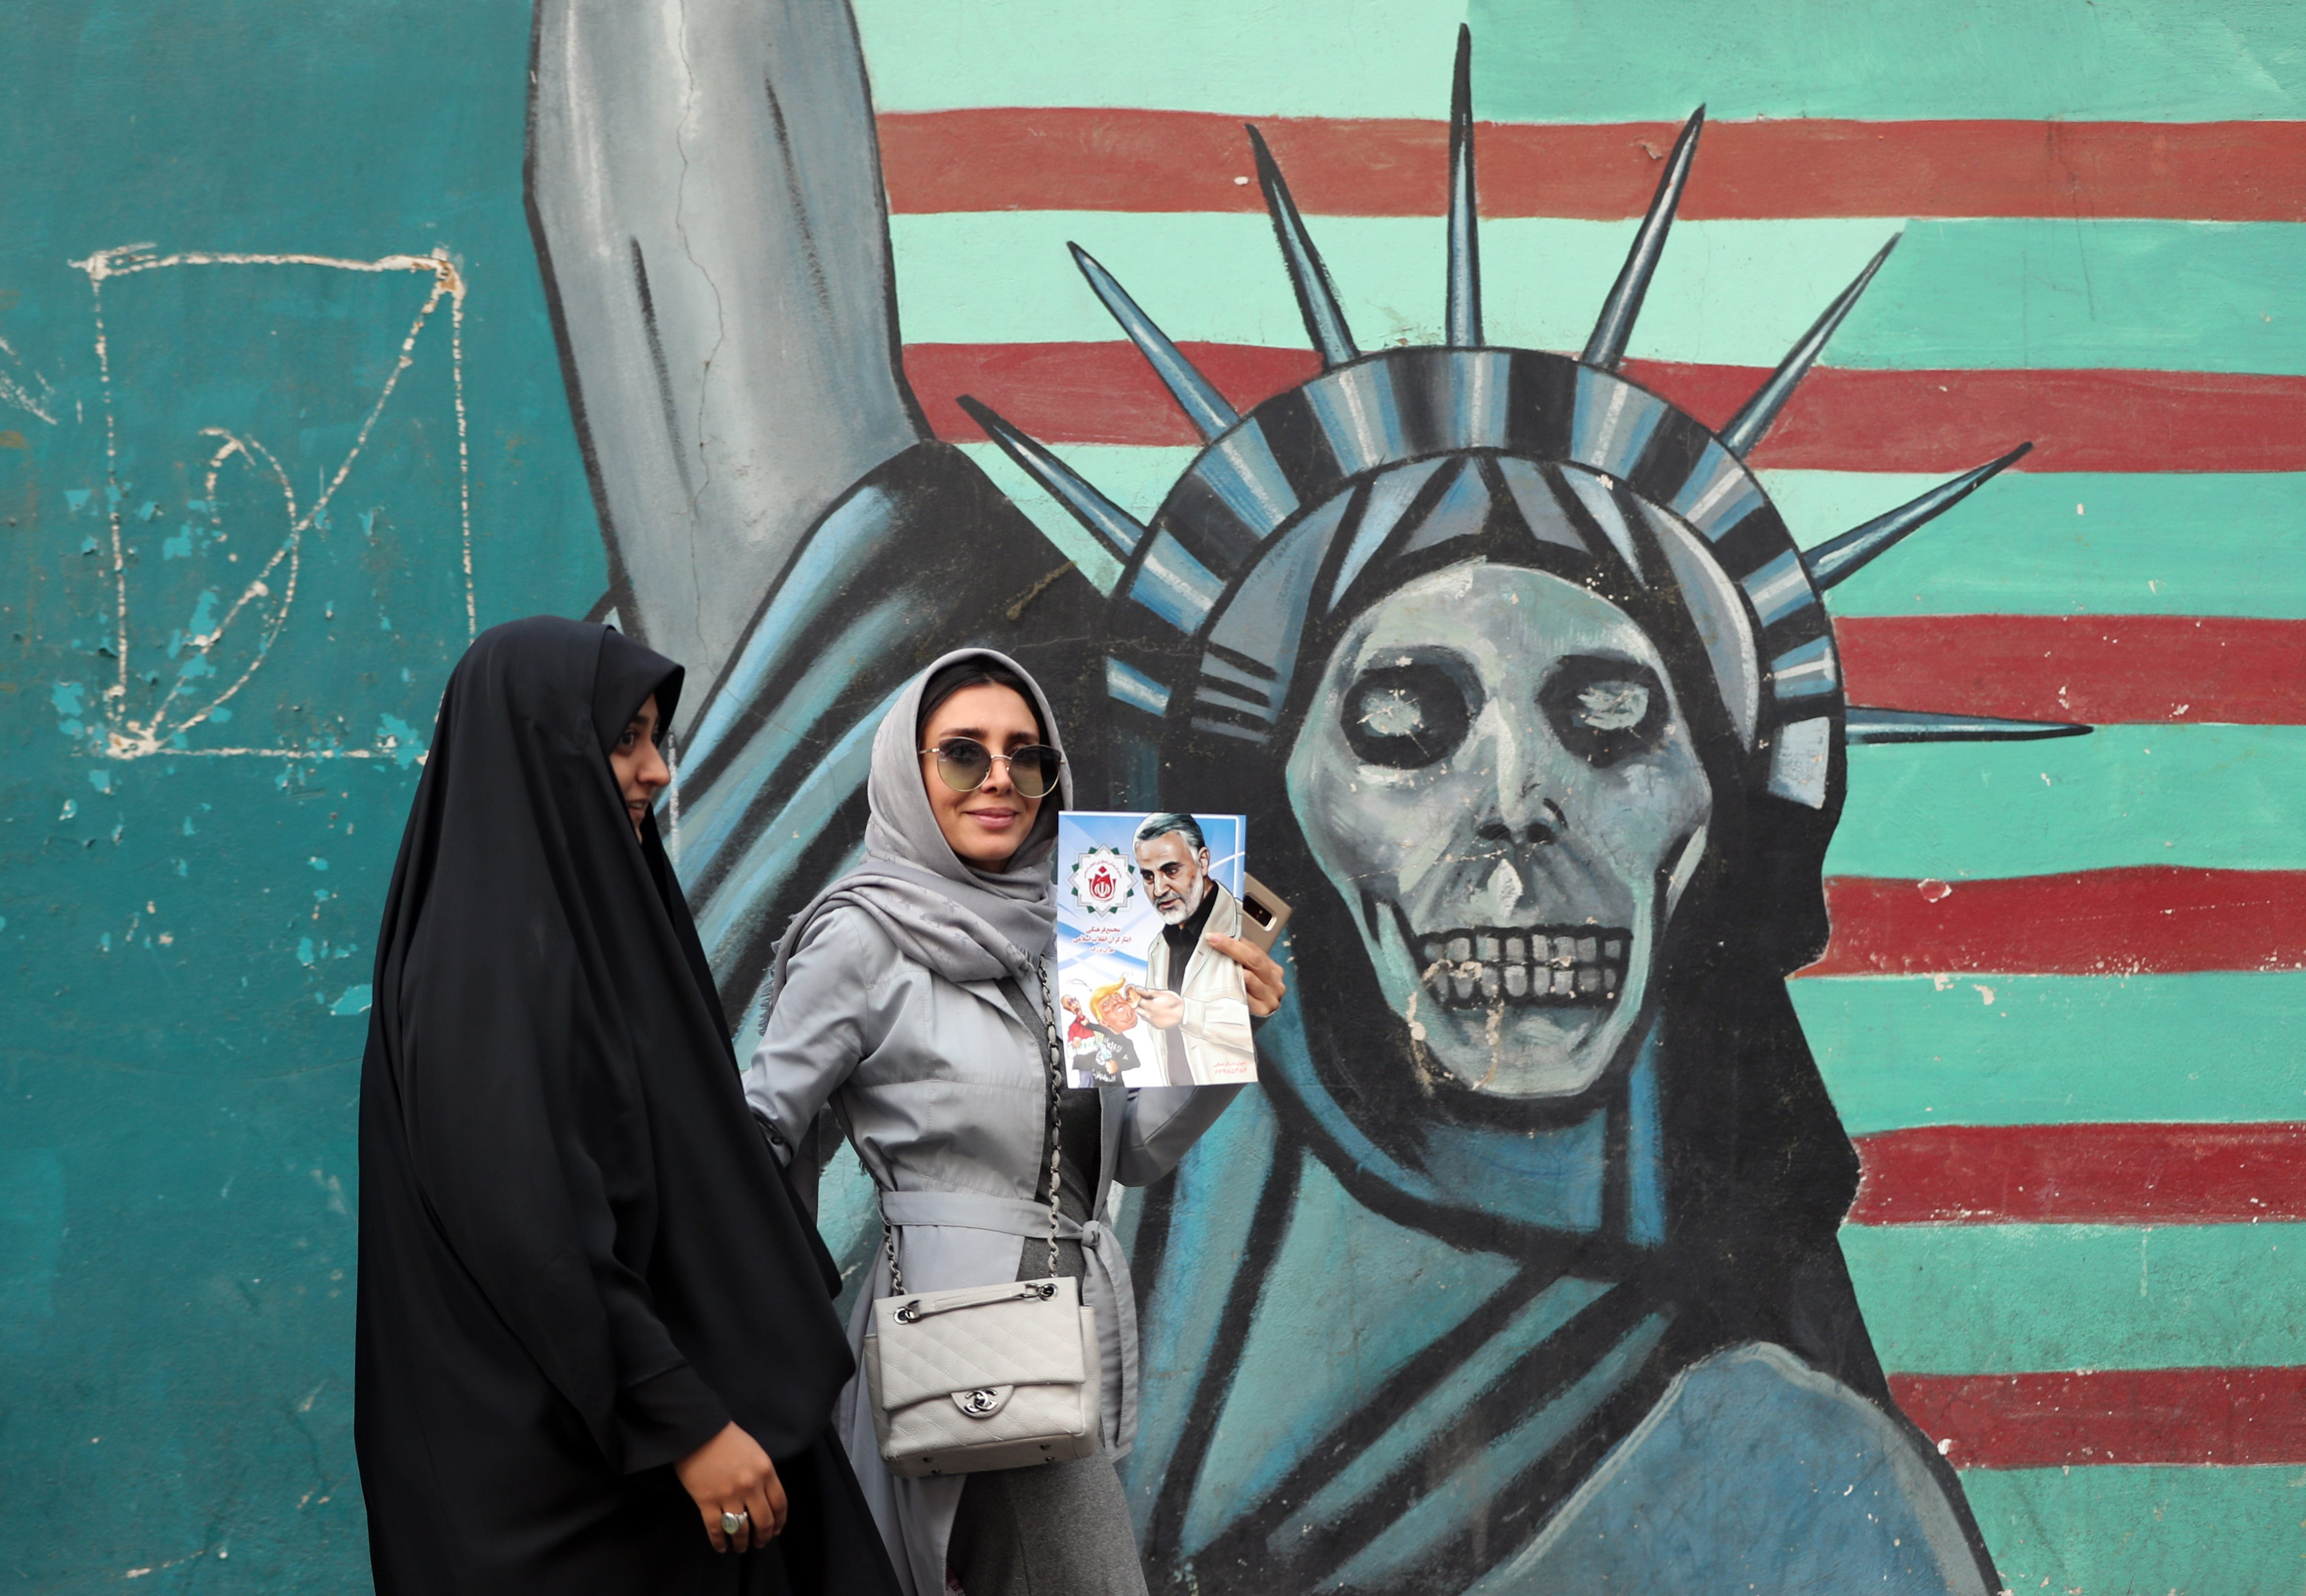 An Iranian woman holds a poster of an Iranian general from the Islamic Revolutionary Guard Corps as she walks past a mural depicting a skull-faced Statue of Liberty near the former U.S. Embassy in Tehran, Iran, on Sunday, Nov. 4, 2018.